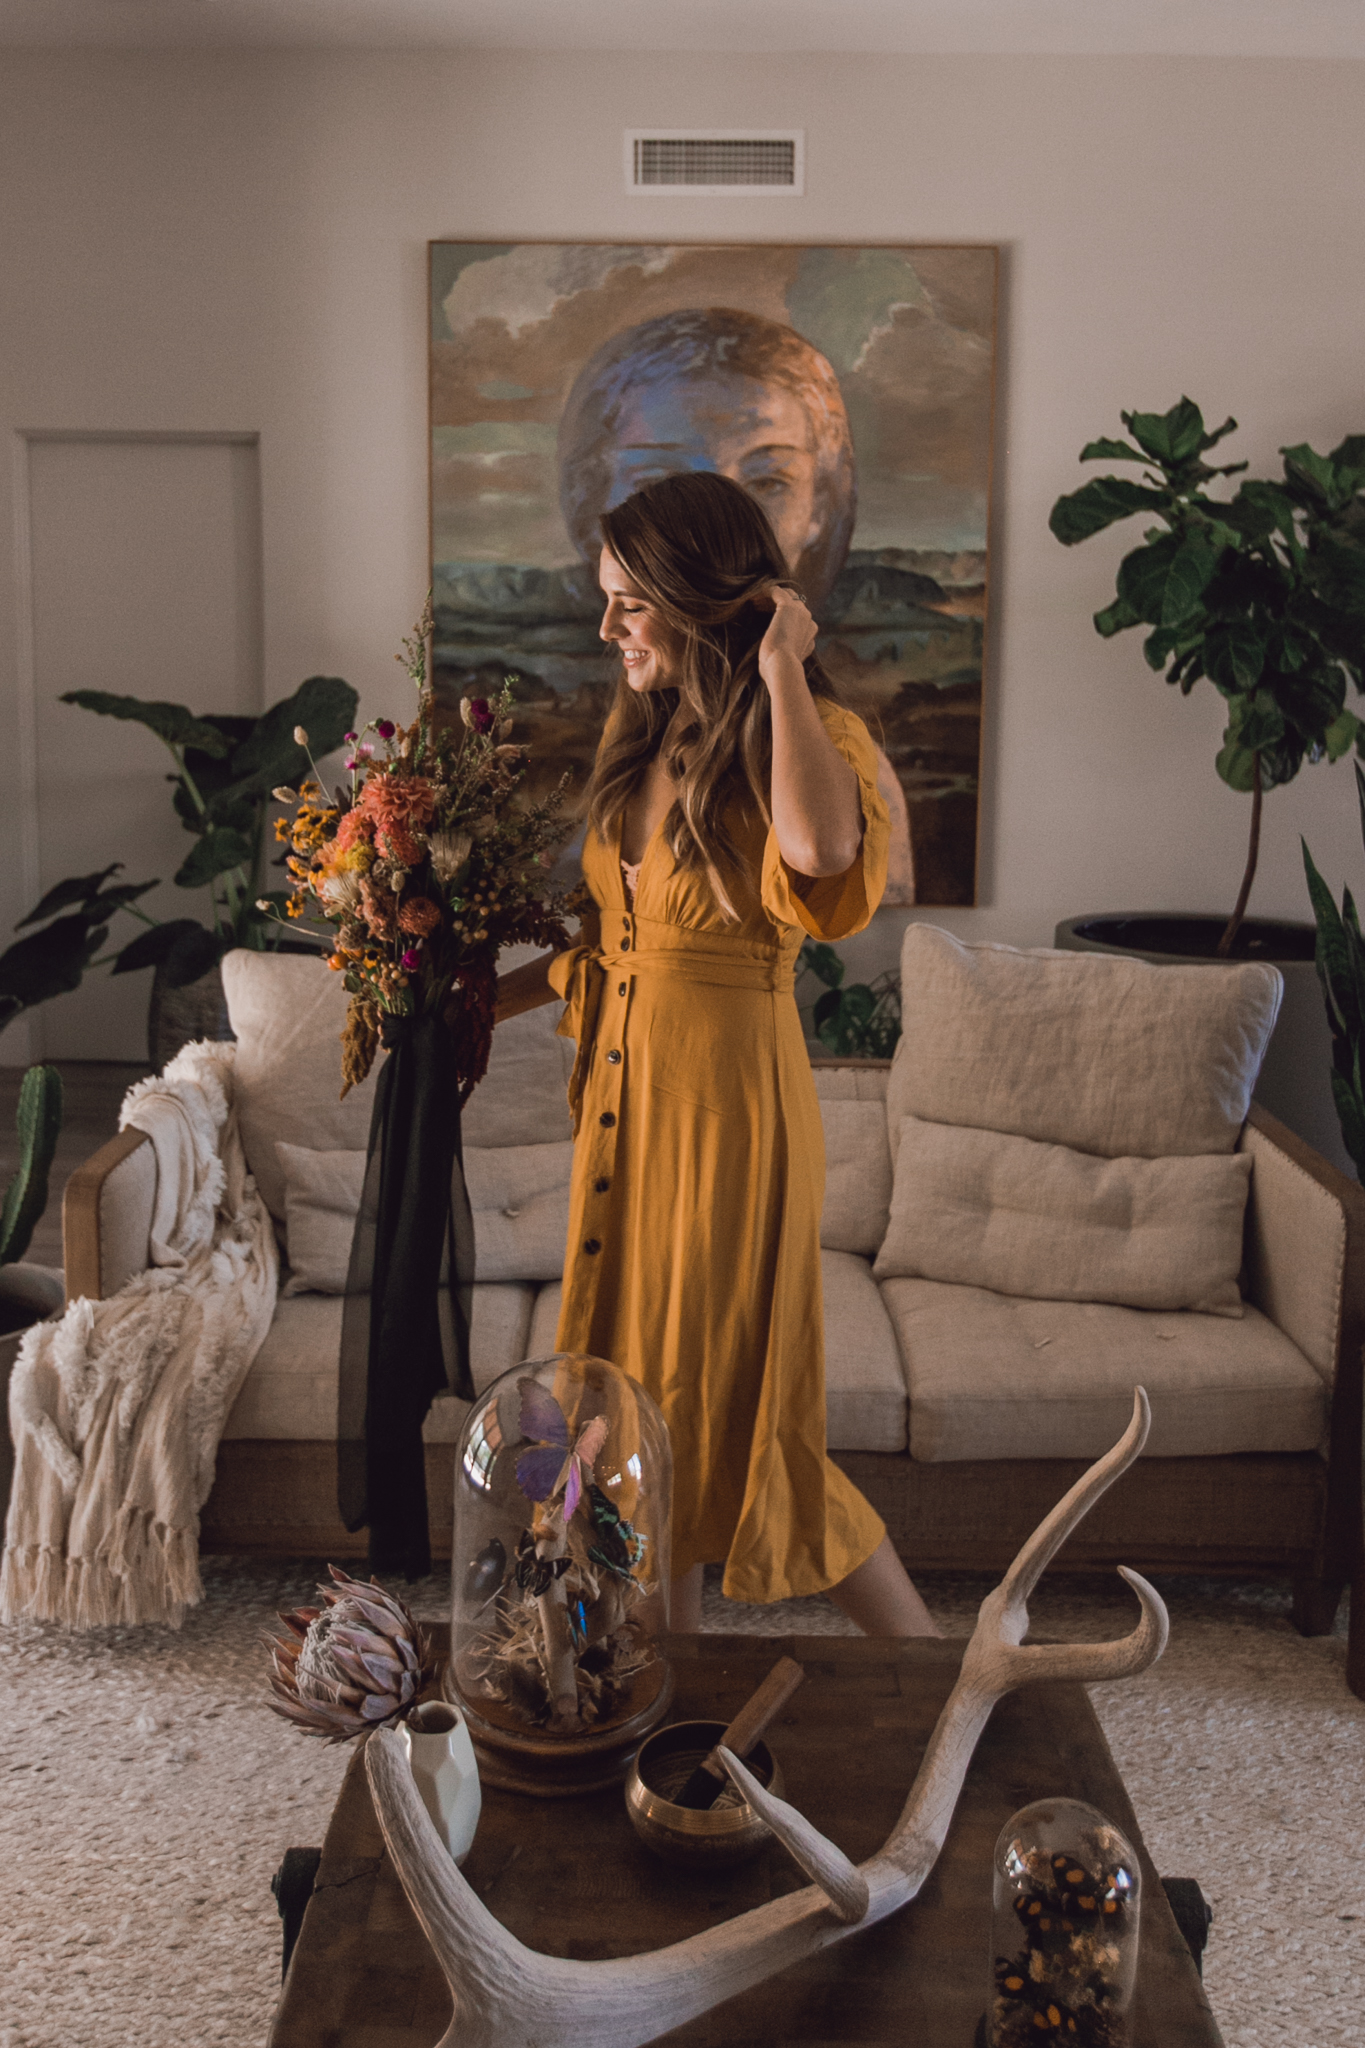 forever-21-yellow-dress-the-botanical-studios-raven-hill-floral-instalations